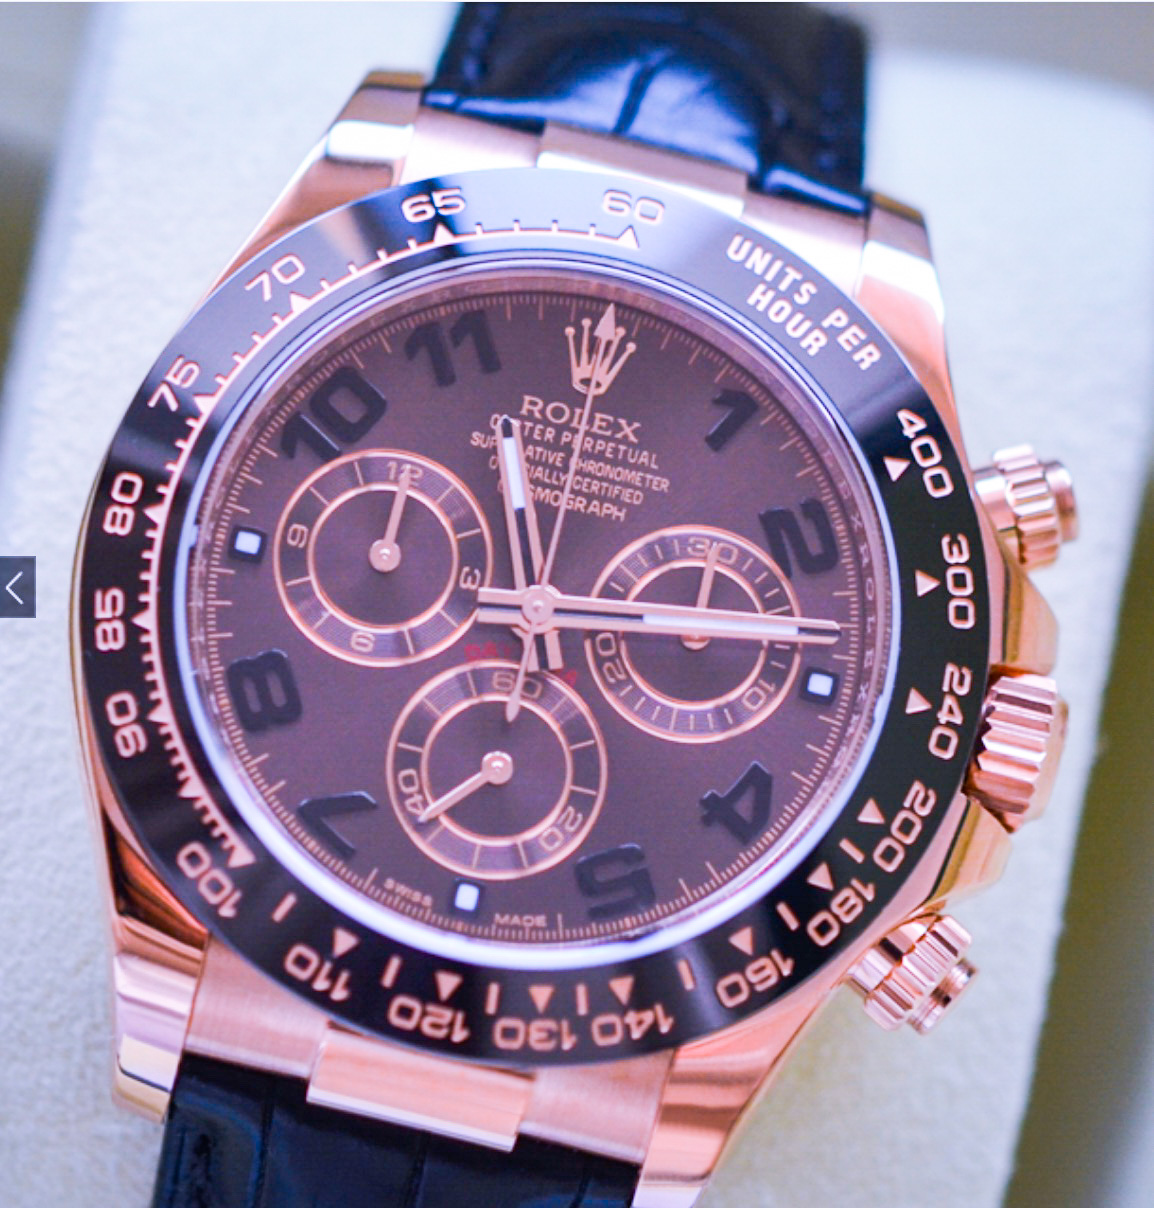 9230df92d The Best Place to Sell a Used Watch in Las Vegas, NV